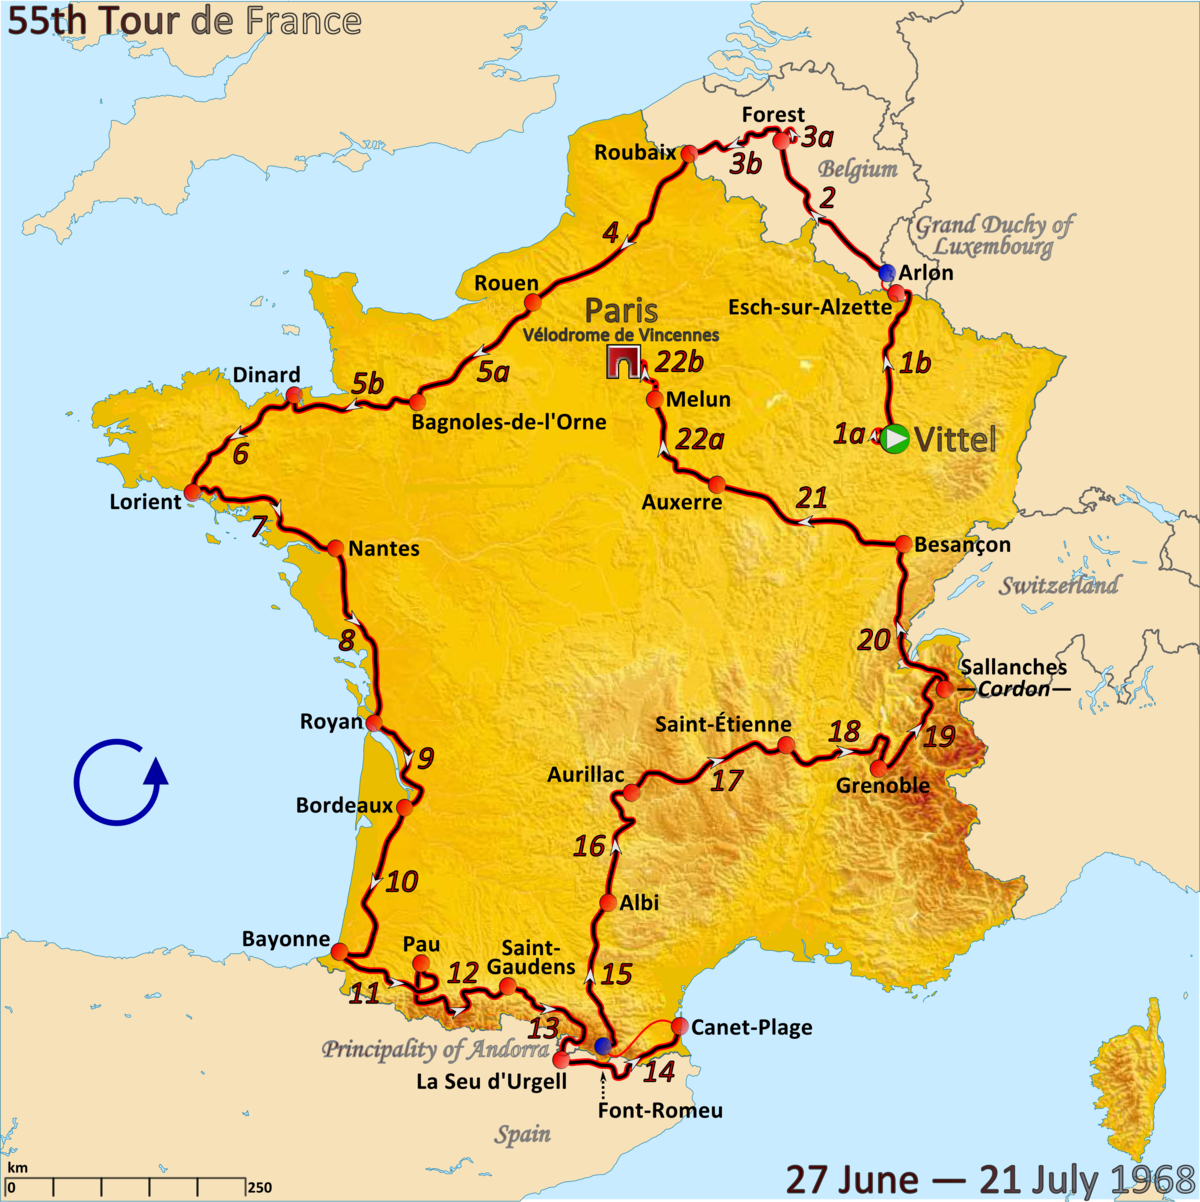 1968 tour de france wikipedia. Black Bedroom Furniture Sets. Home Design Ideas